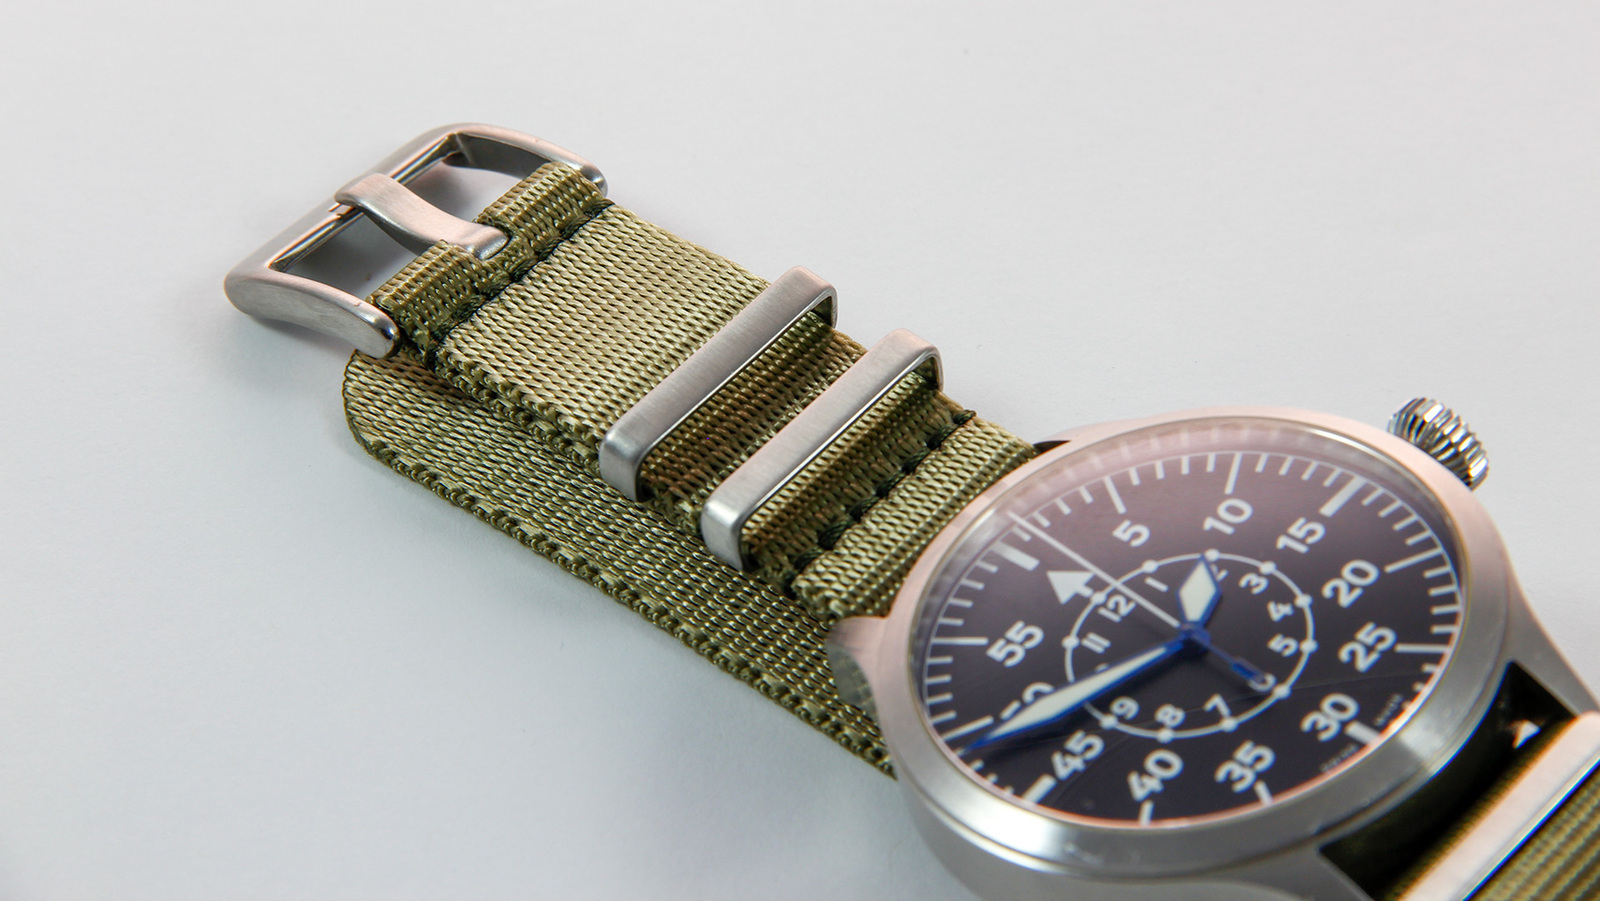 Khaki Green seatbelt NATO watch strap